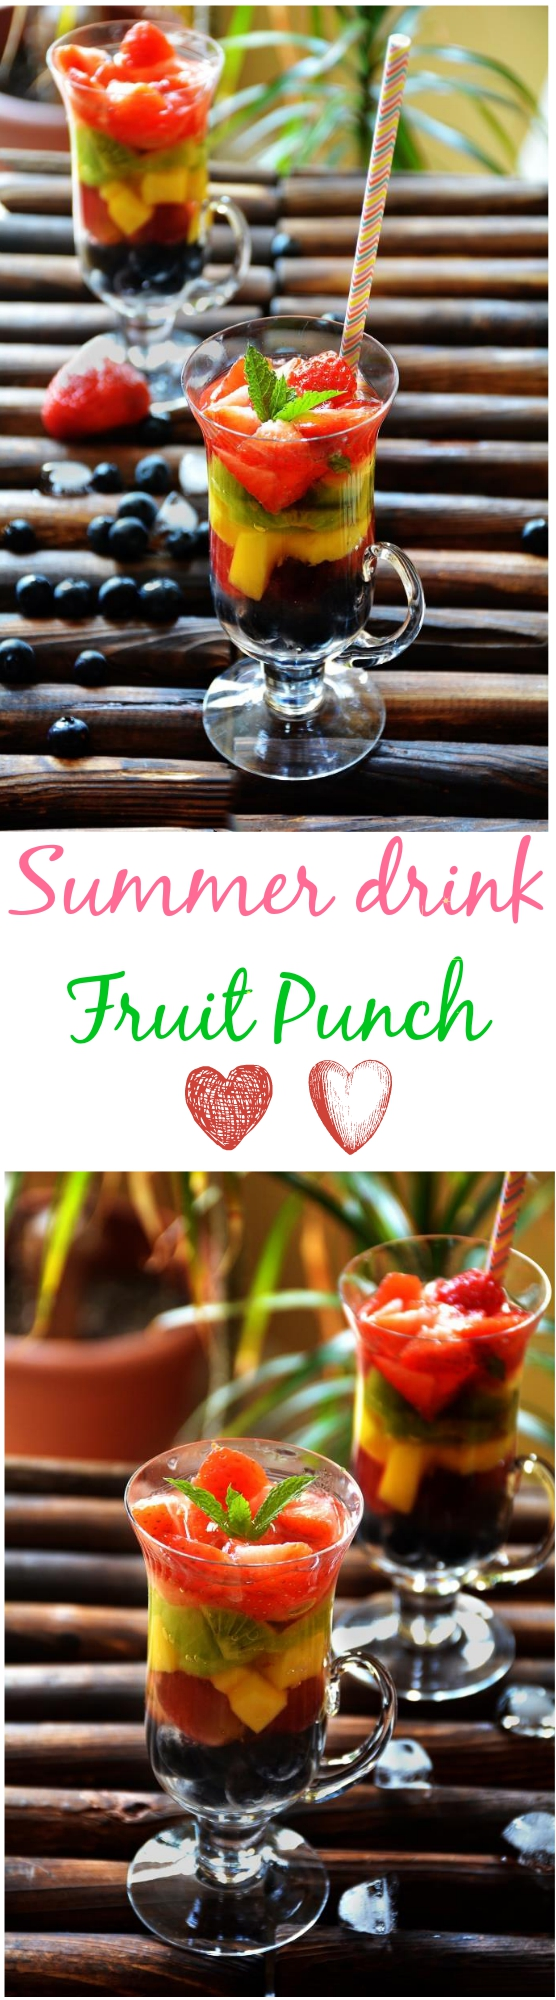 Homemade fruit punch recipe